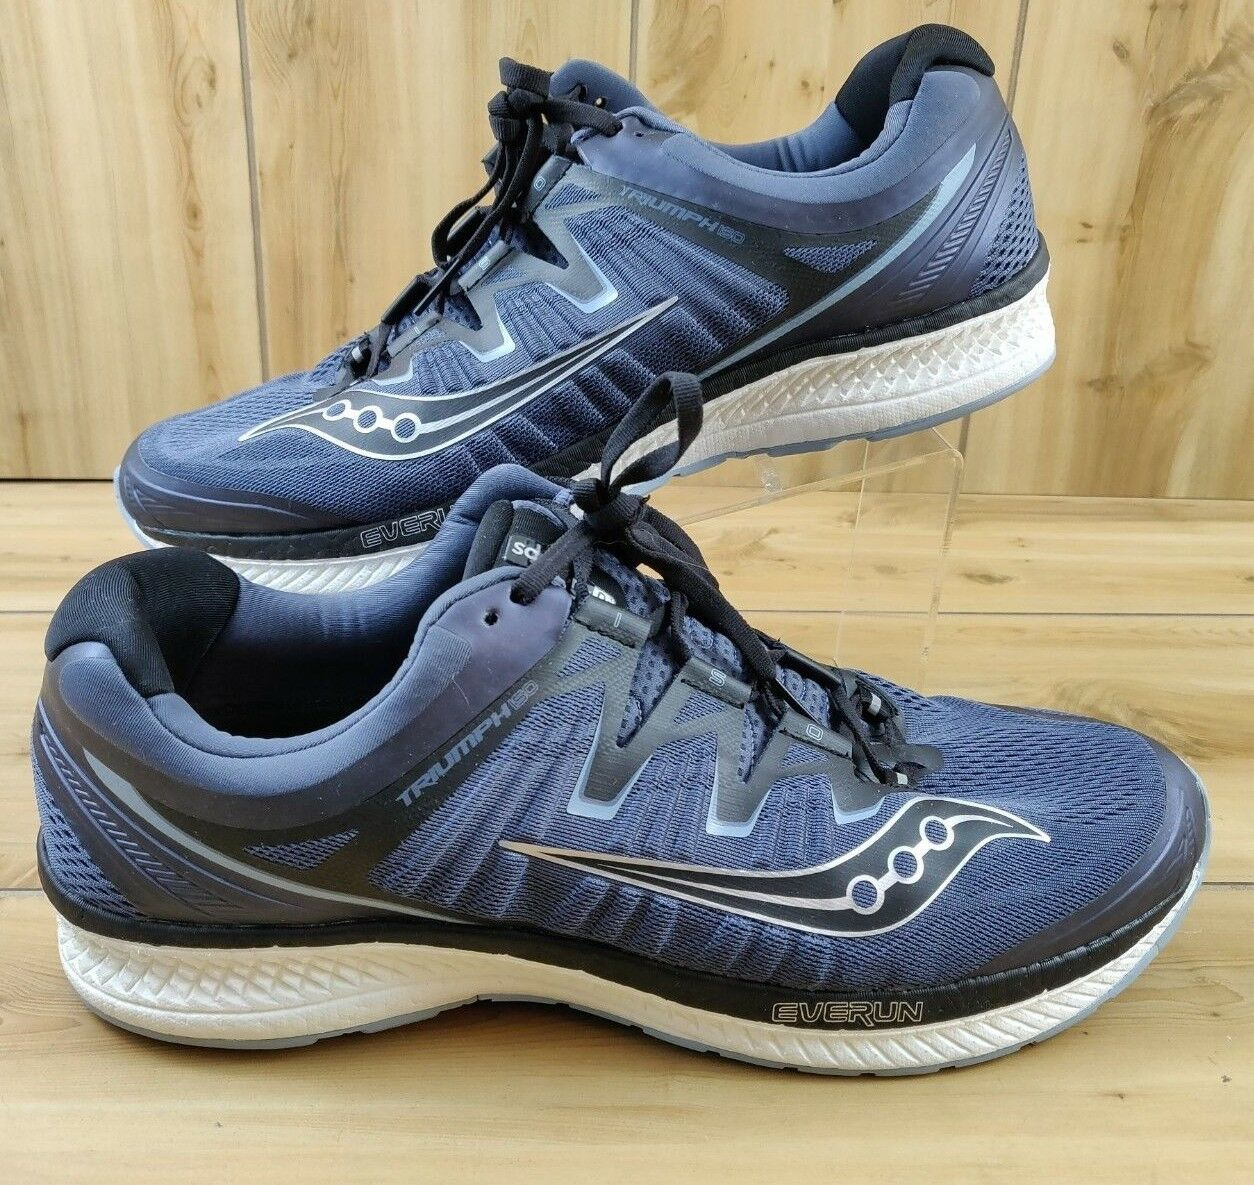 New Saucony Men's Triumph ISO 4 Running shoes Grey Black 15 Wide US S20414-1